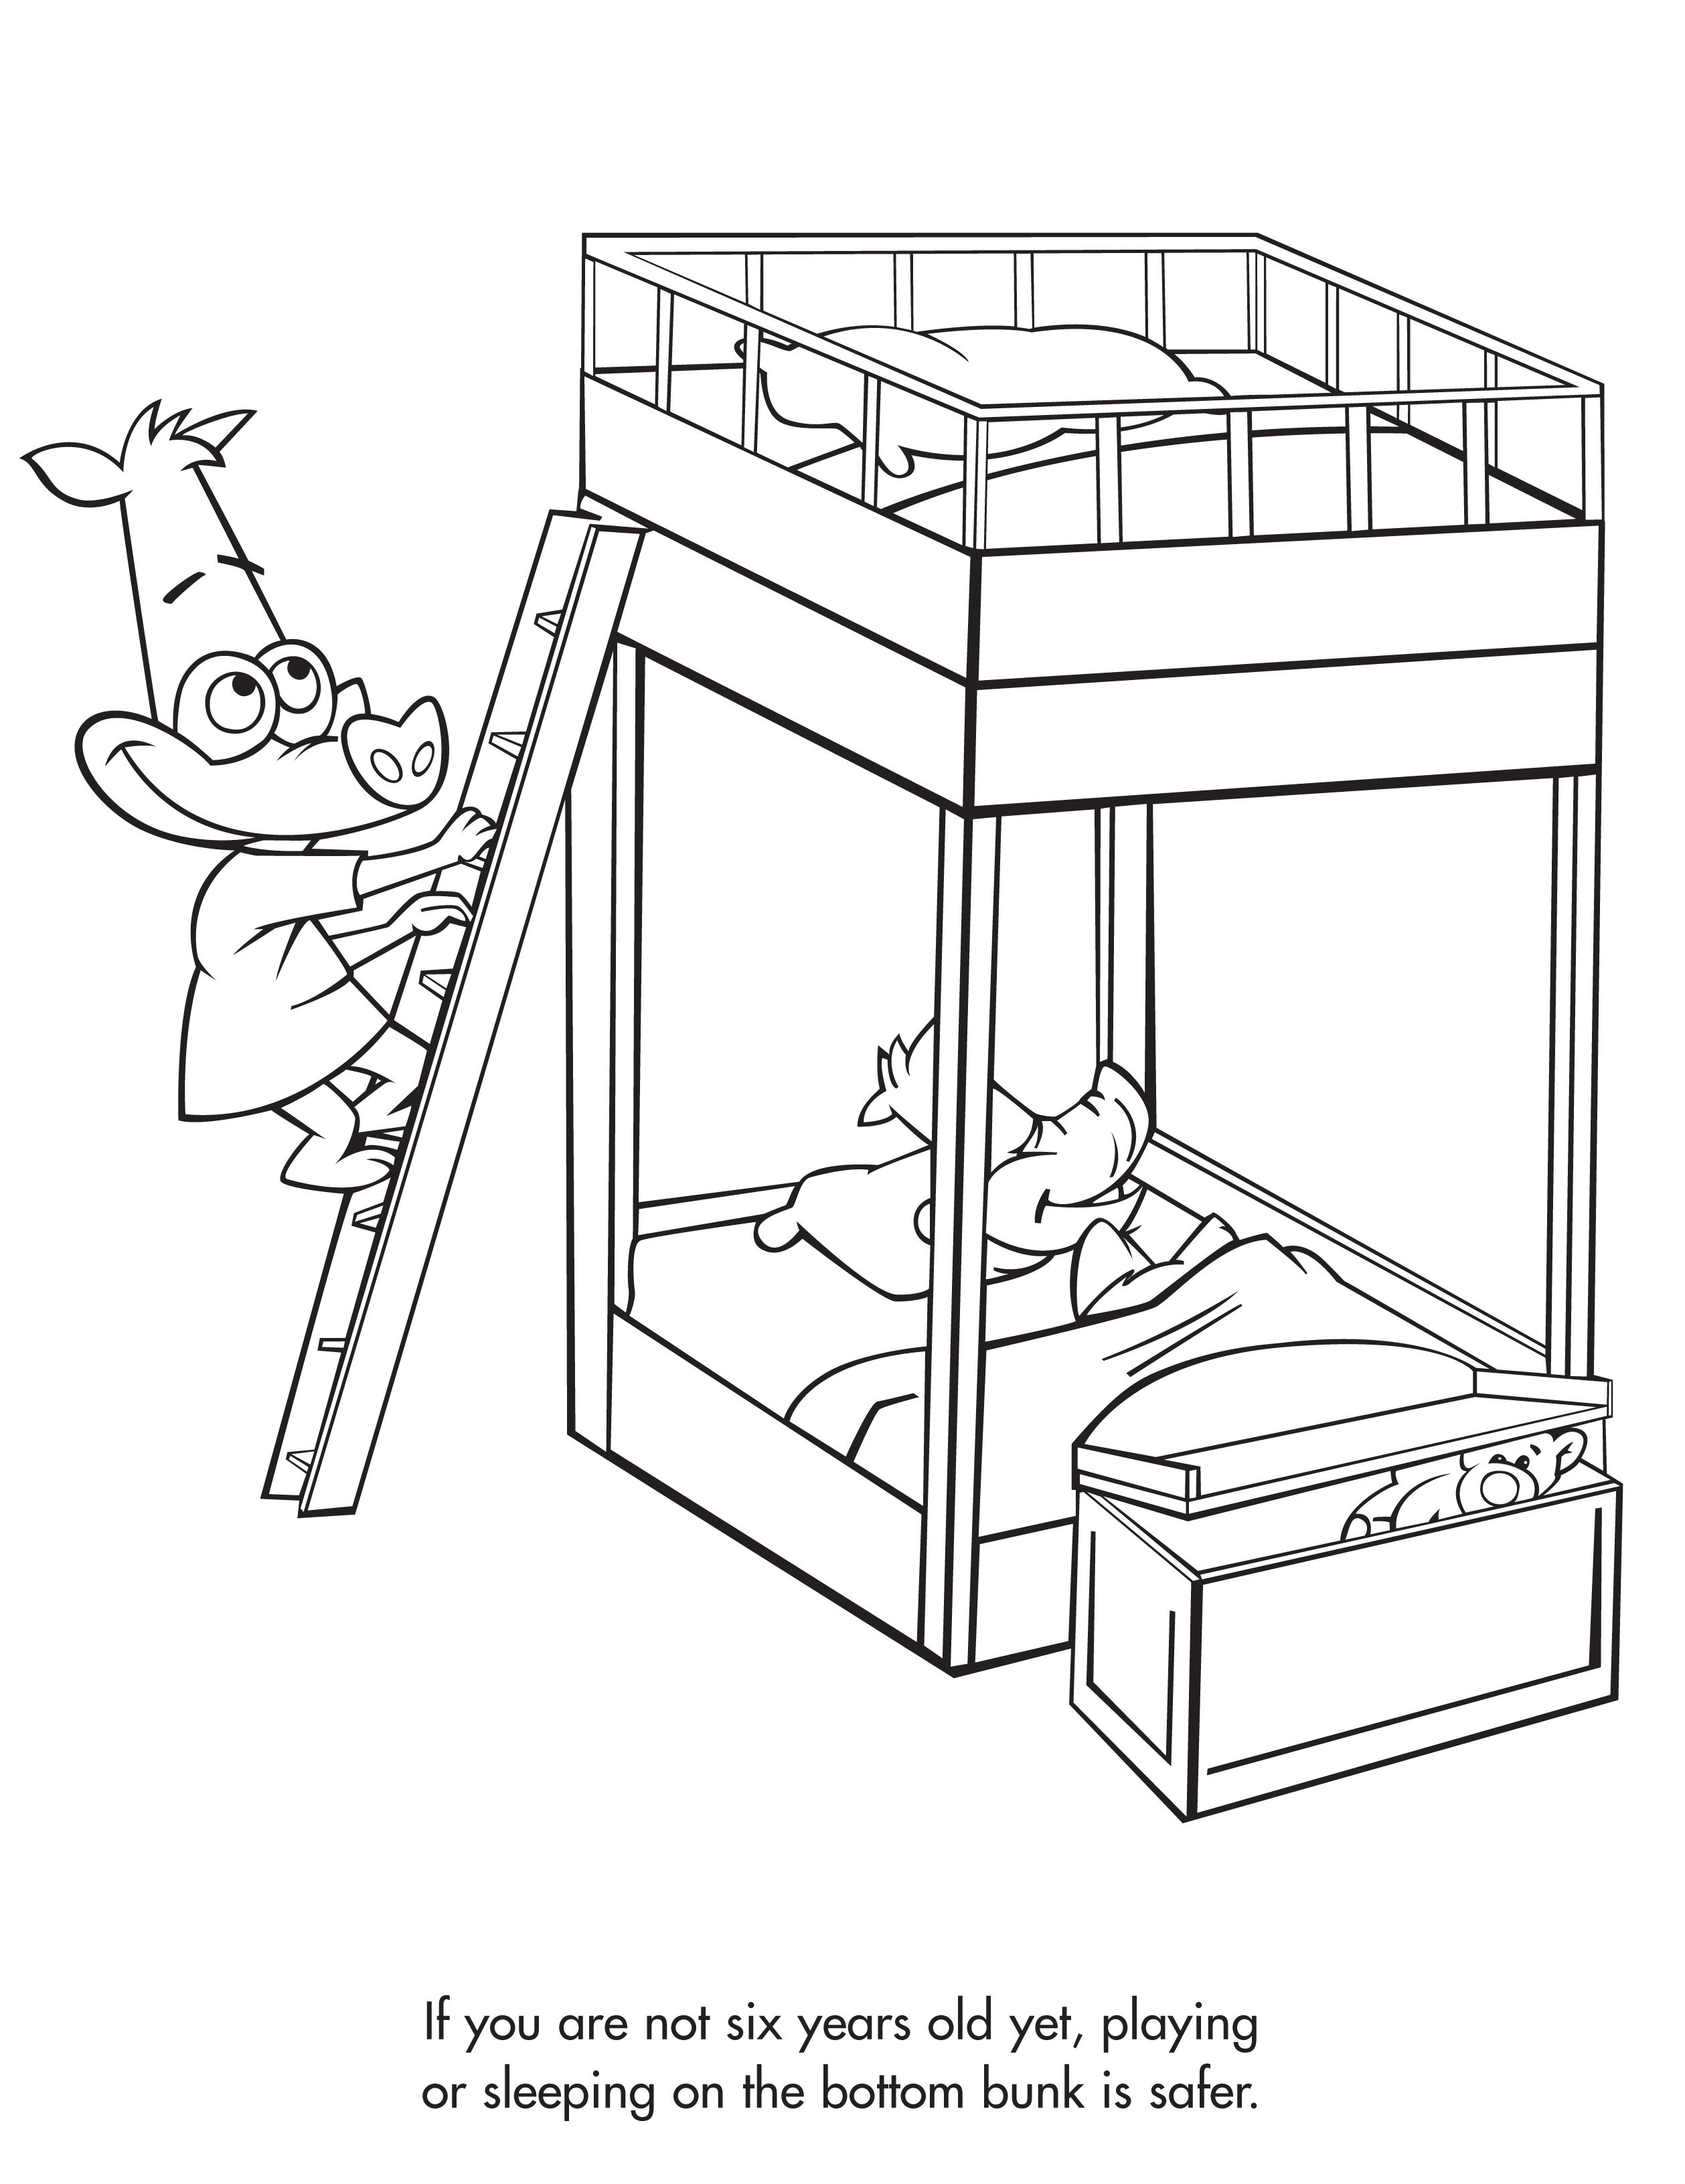 Bunk Bed Safety Childsafety Freeprintable